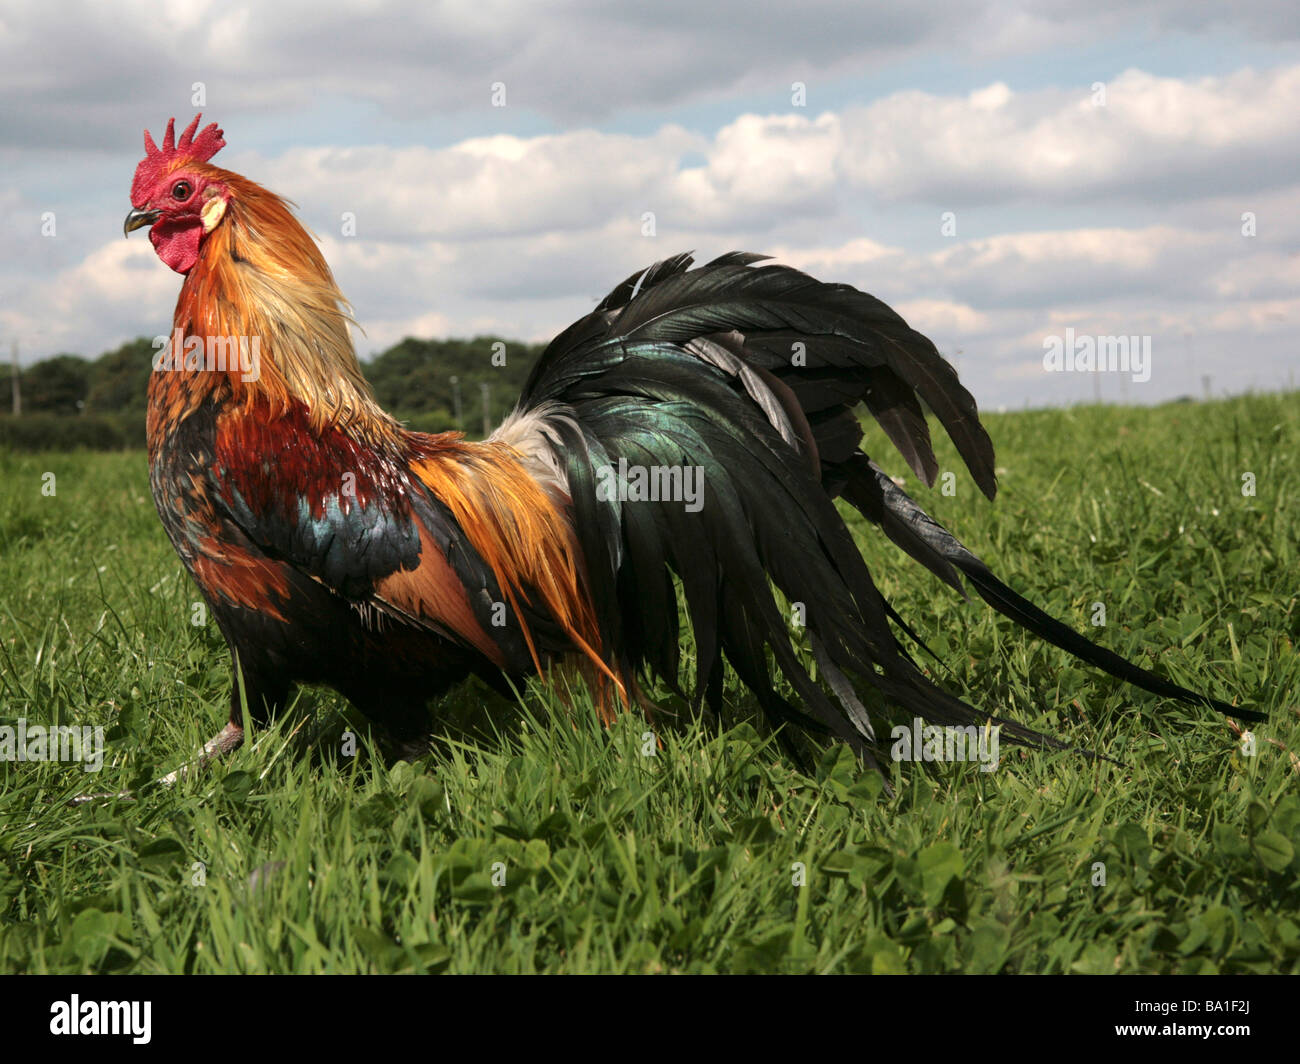 Colourful cockerel in a field - Stock Image